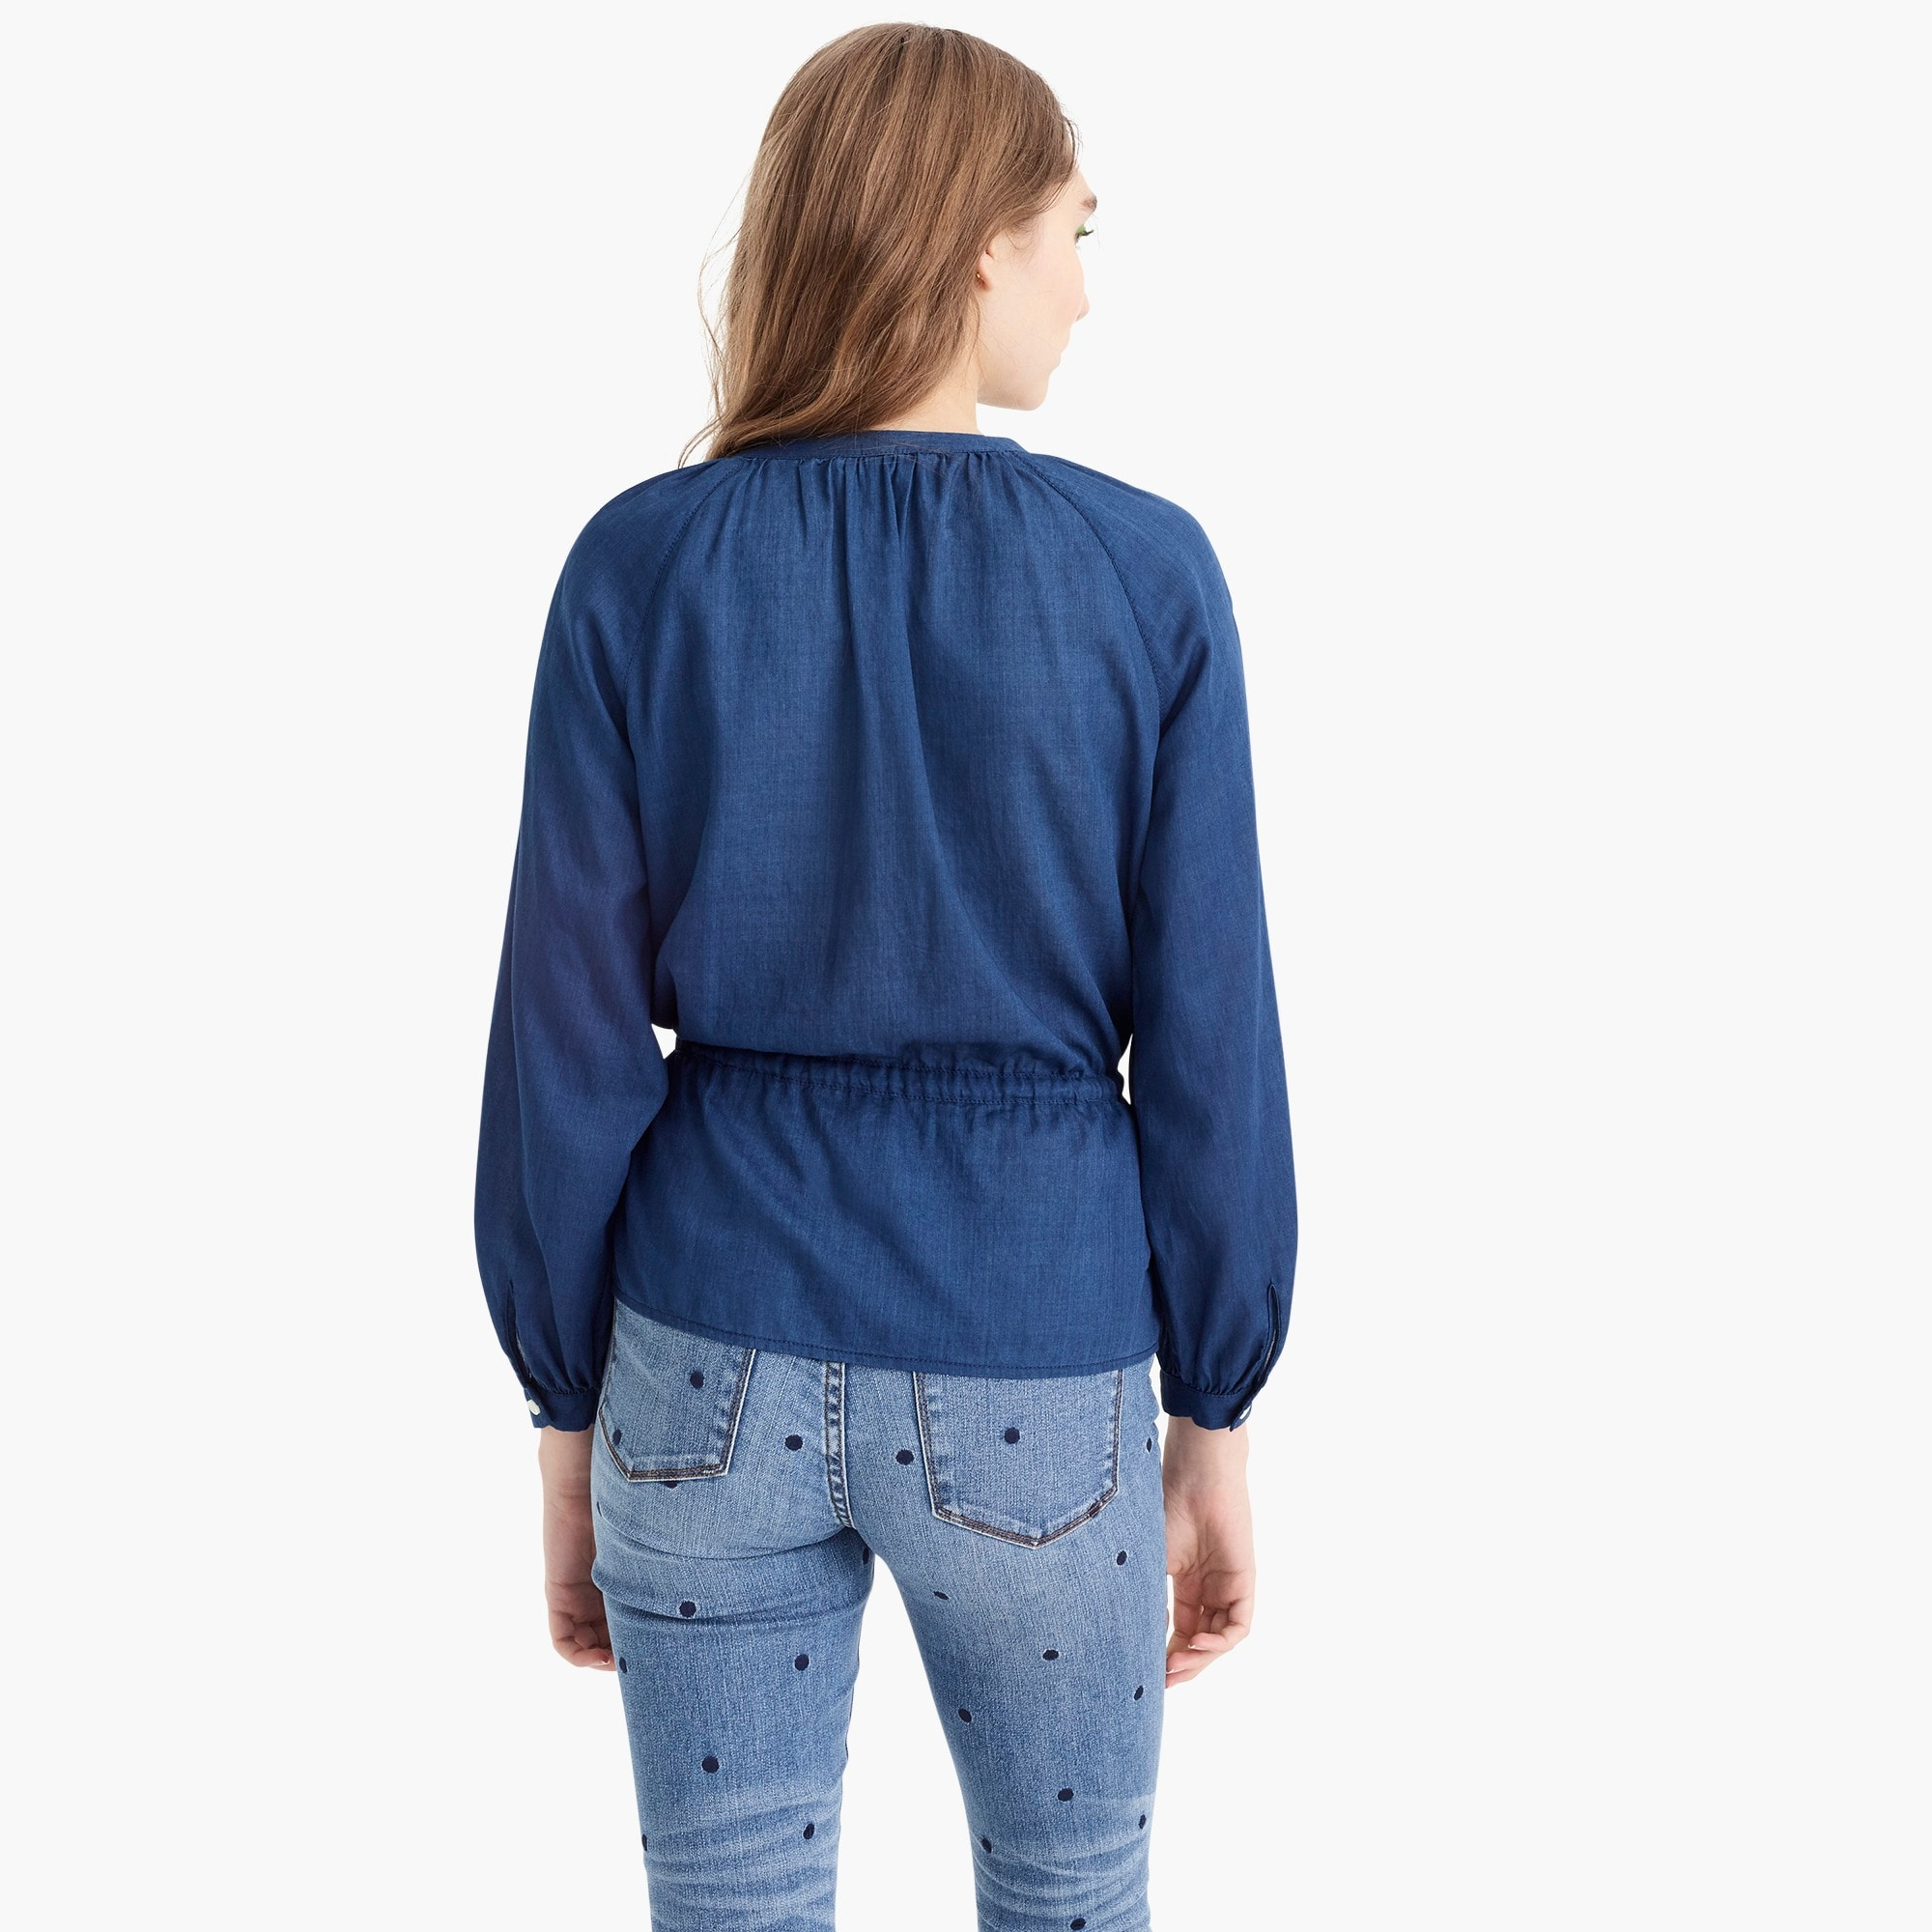 Image 6 for Tall tie-waist top in indigo gauze